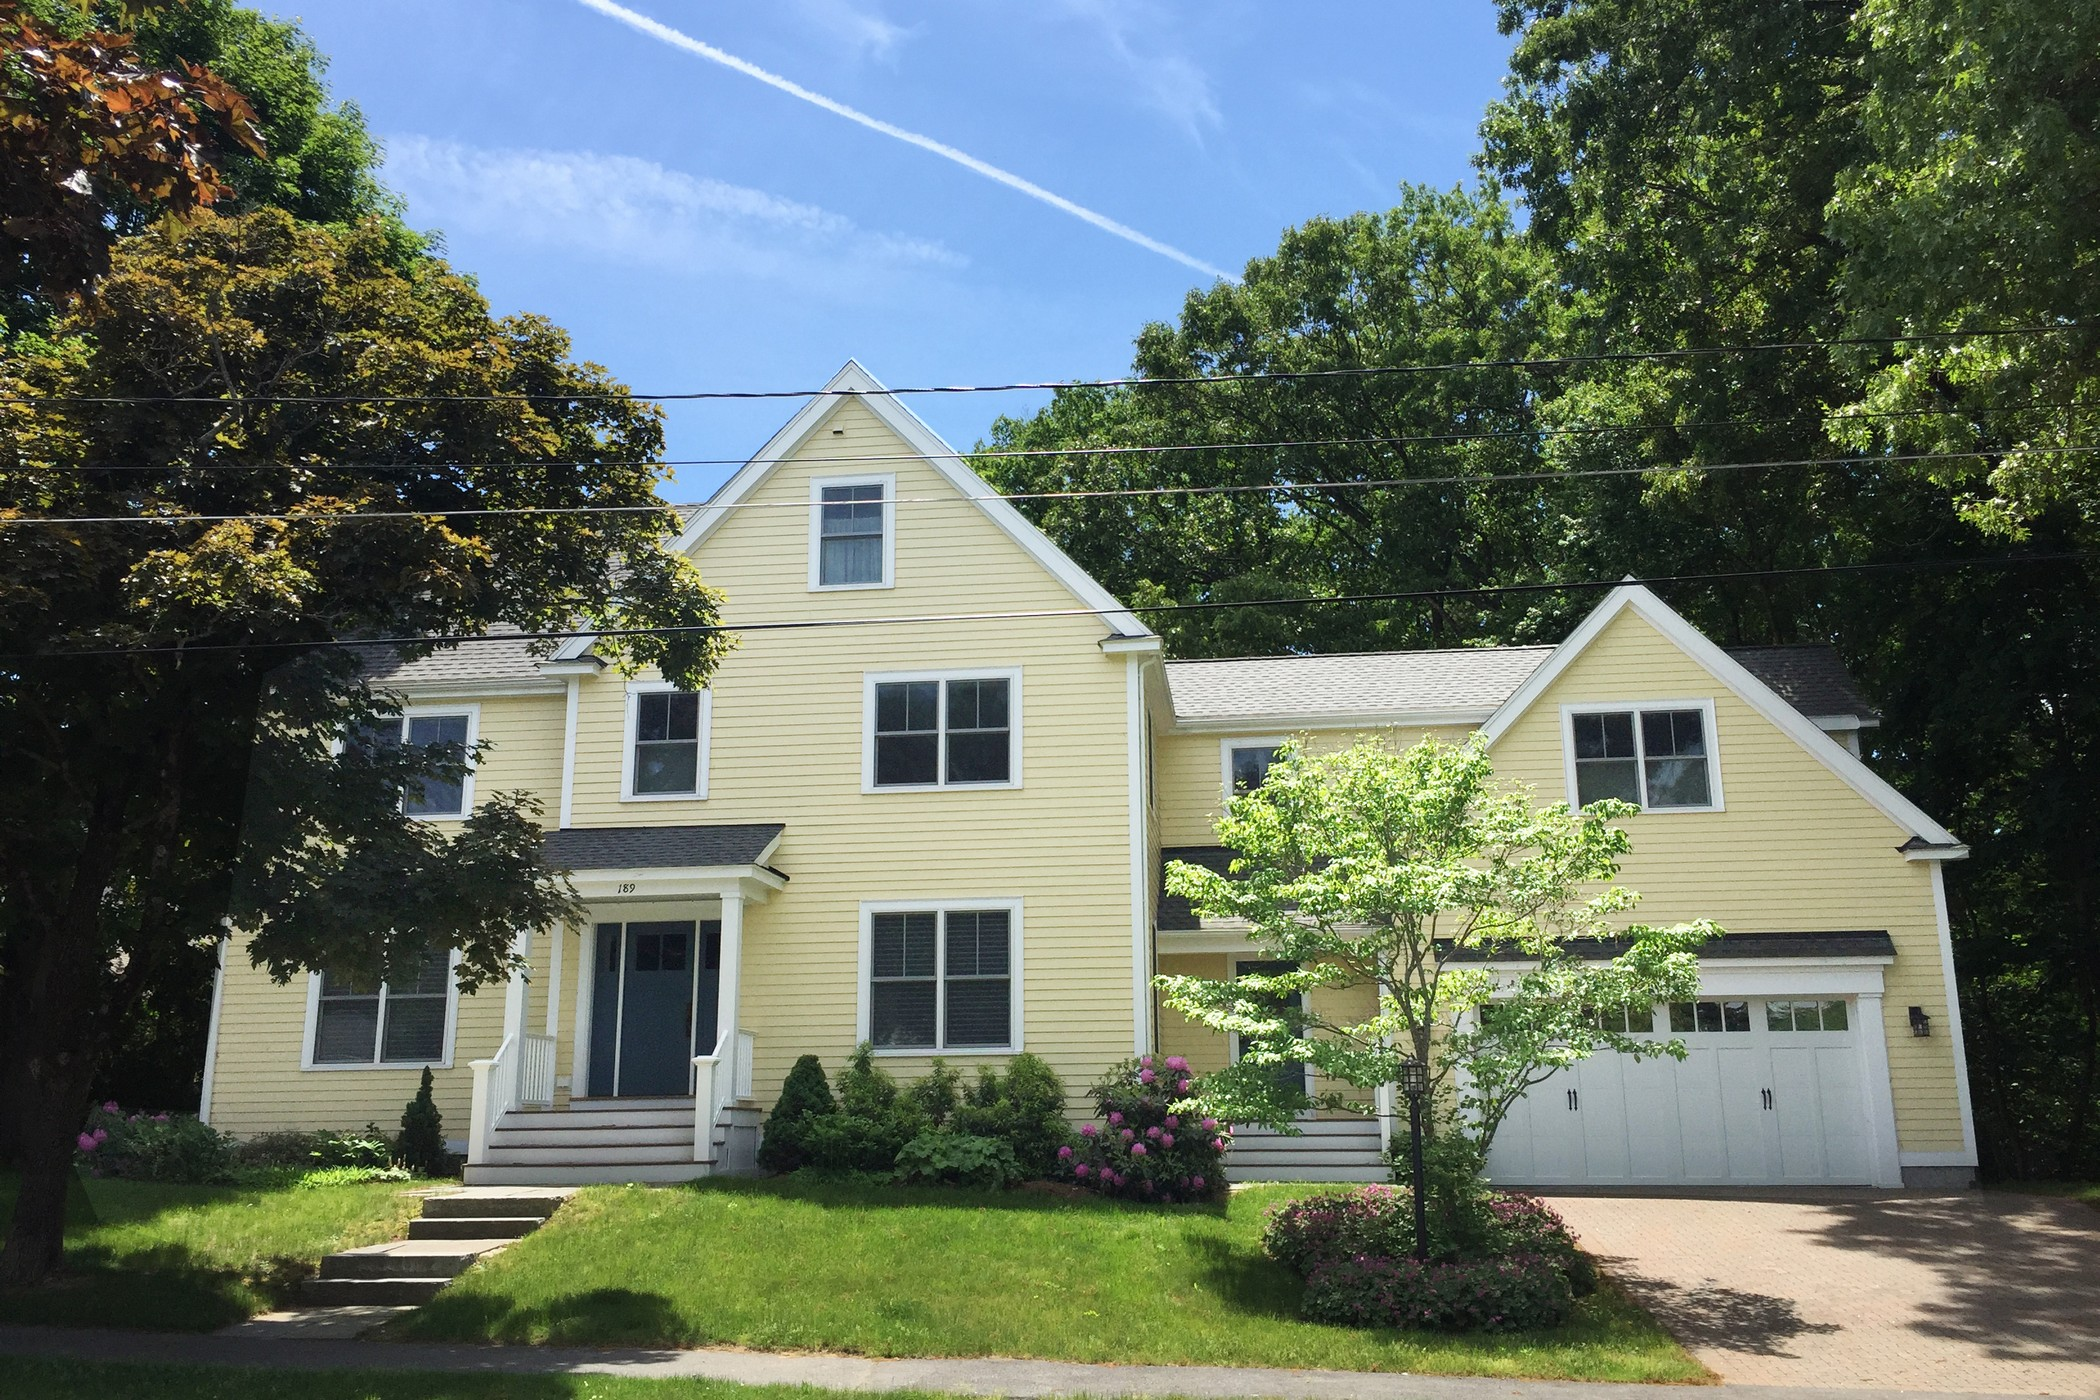 Single Family Home for Sale at Walk to West Concord Village 189 Prairie Street Concord, Massachusetts, 01742 United States